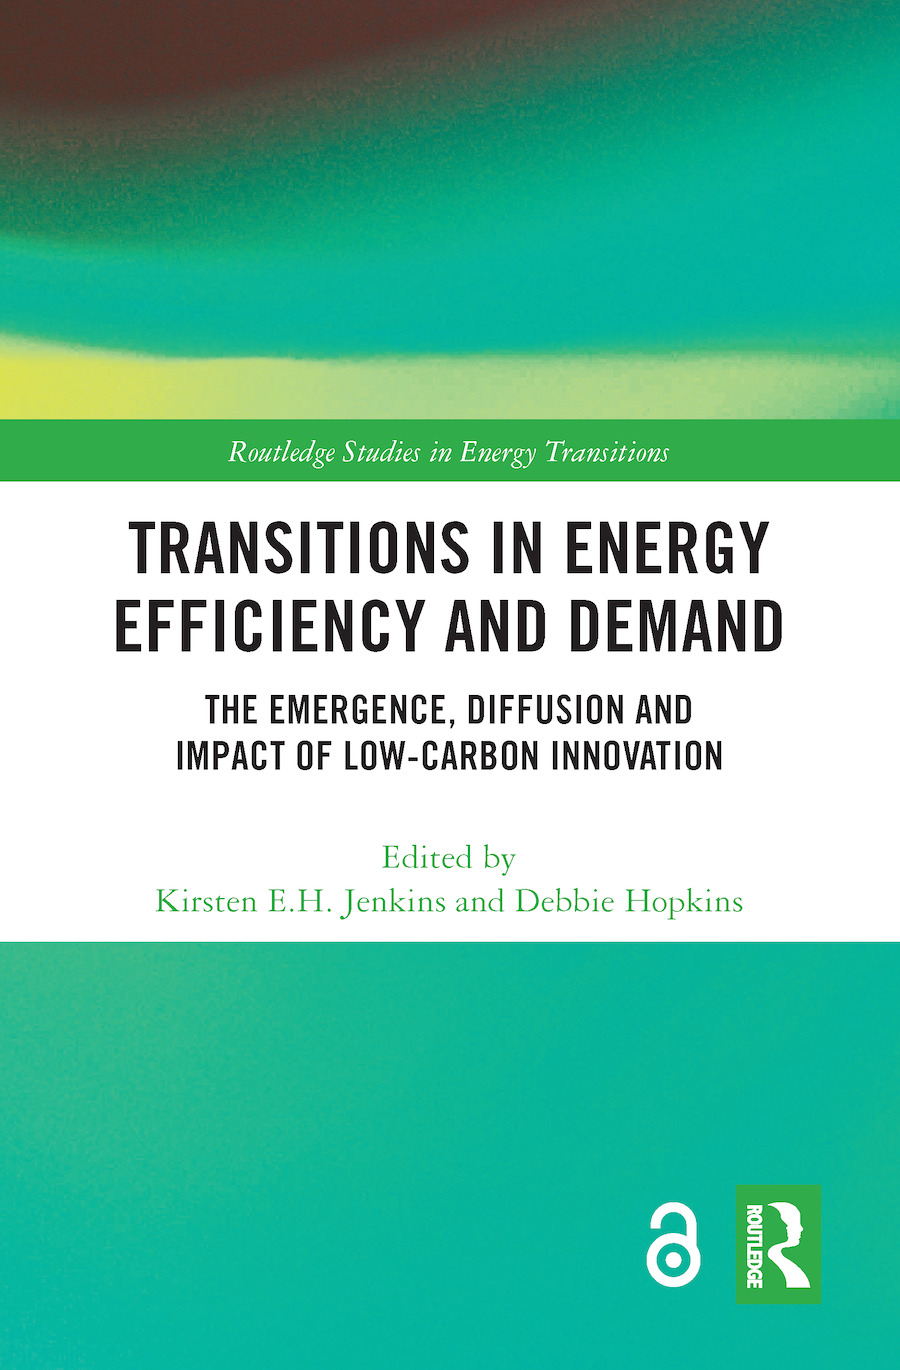 Transitions in Energy Efficiency and Demand (Open Access): The Emergence, Diffusion and Impact of Low-Carbon Innovation book cover